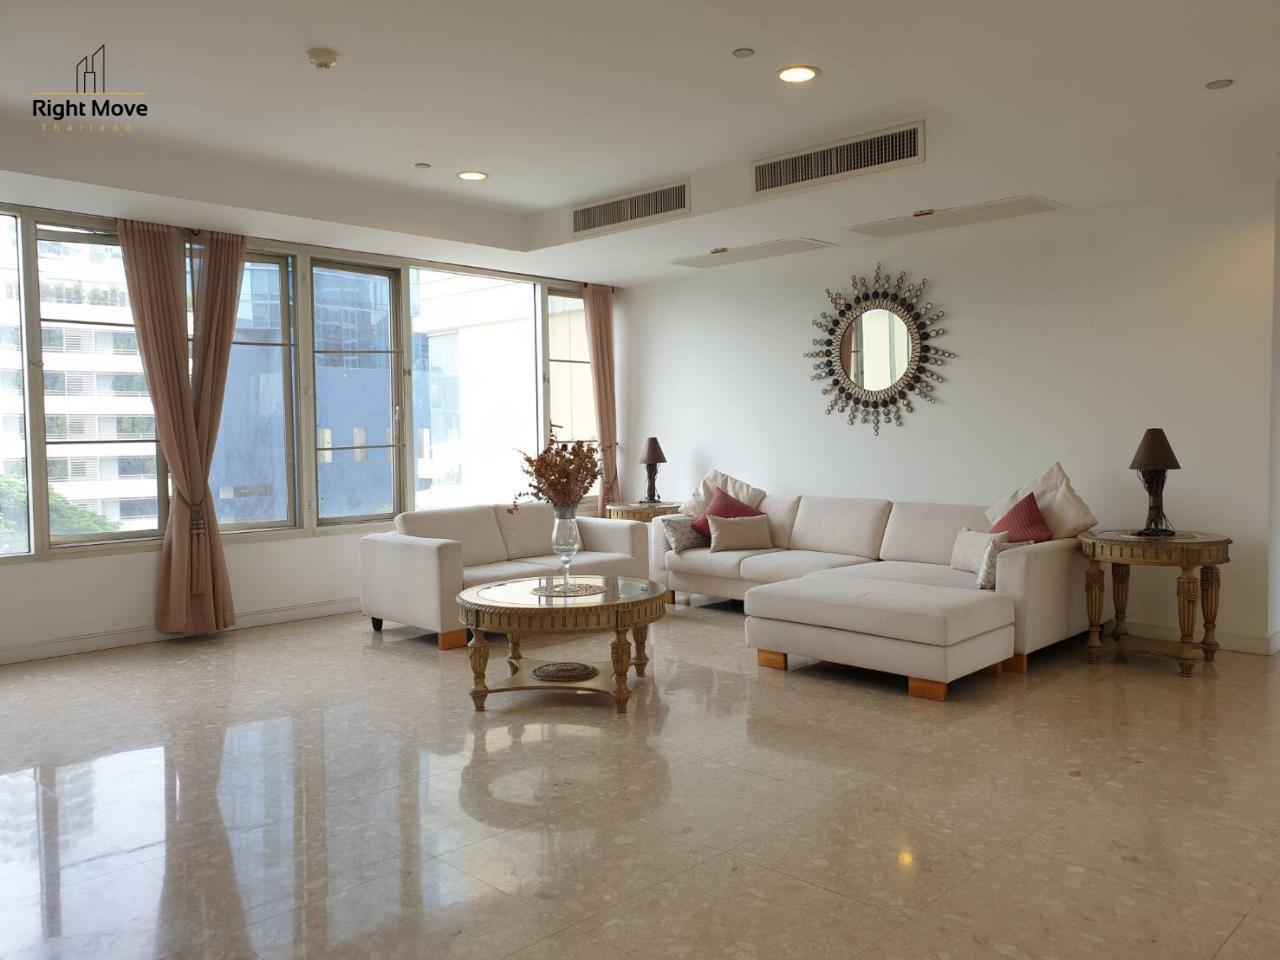 Right Move Thailand Agency's CA3456 Hampton For  Rent 130,000 THB Sale  26,000,000 THB THB 4 Bedrooms 232 Sqm 1